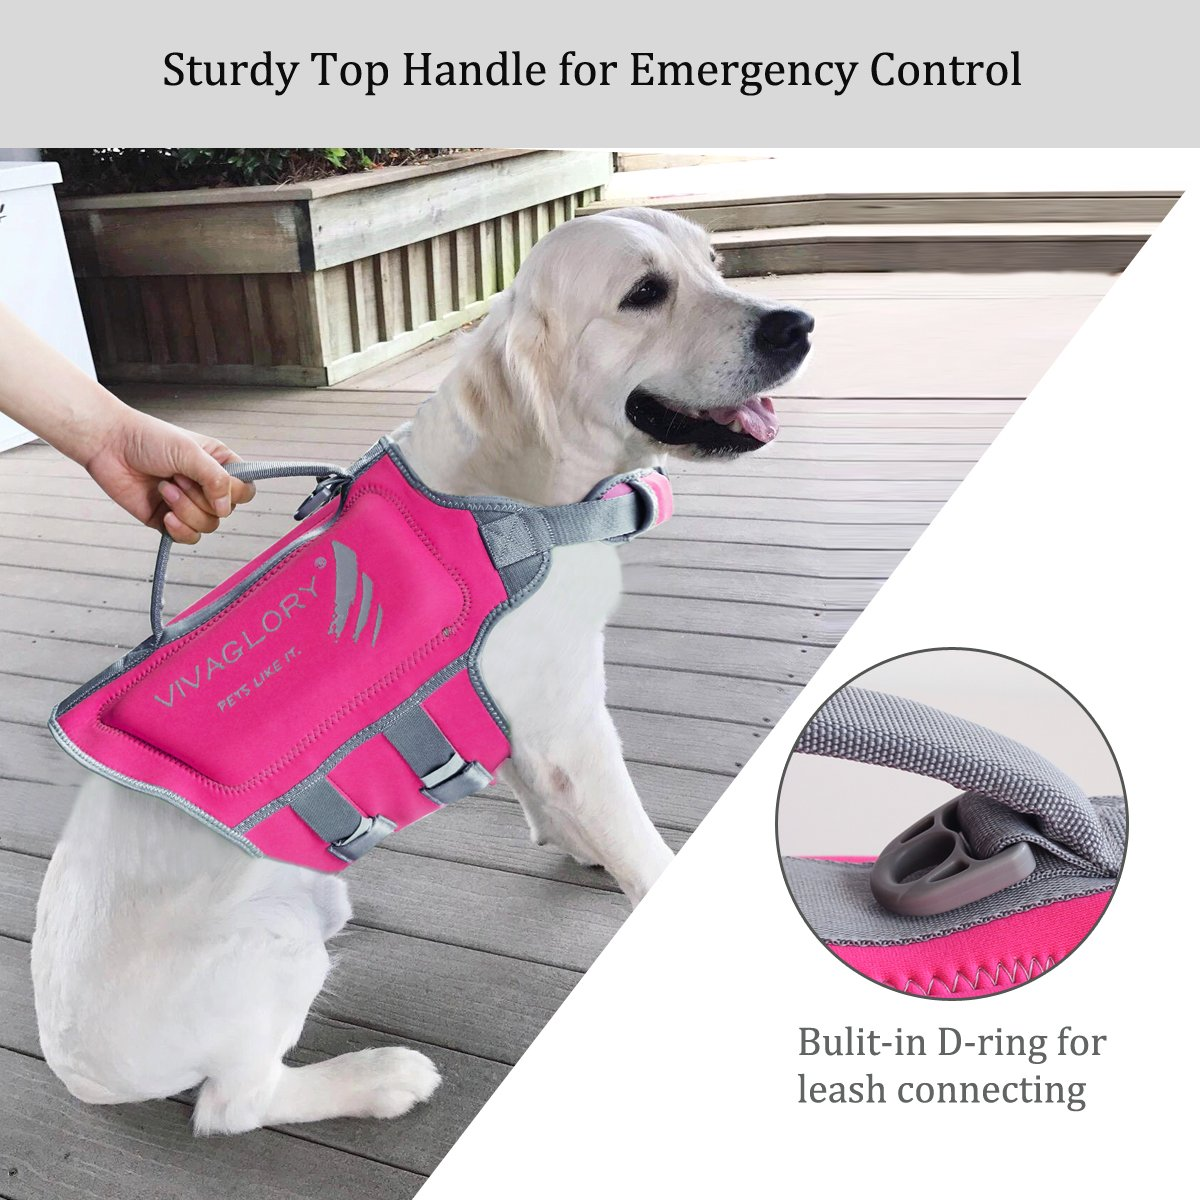 Vivaglory Pet Life Vest, Skin-Friendly Neoprene Dog Safety Vest with Superior Buoyancy and Rescue Handle, Reflective & Adjustable, Pink, Medium by Vivaglory (Image #5)